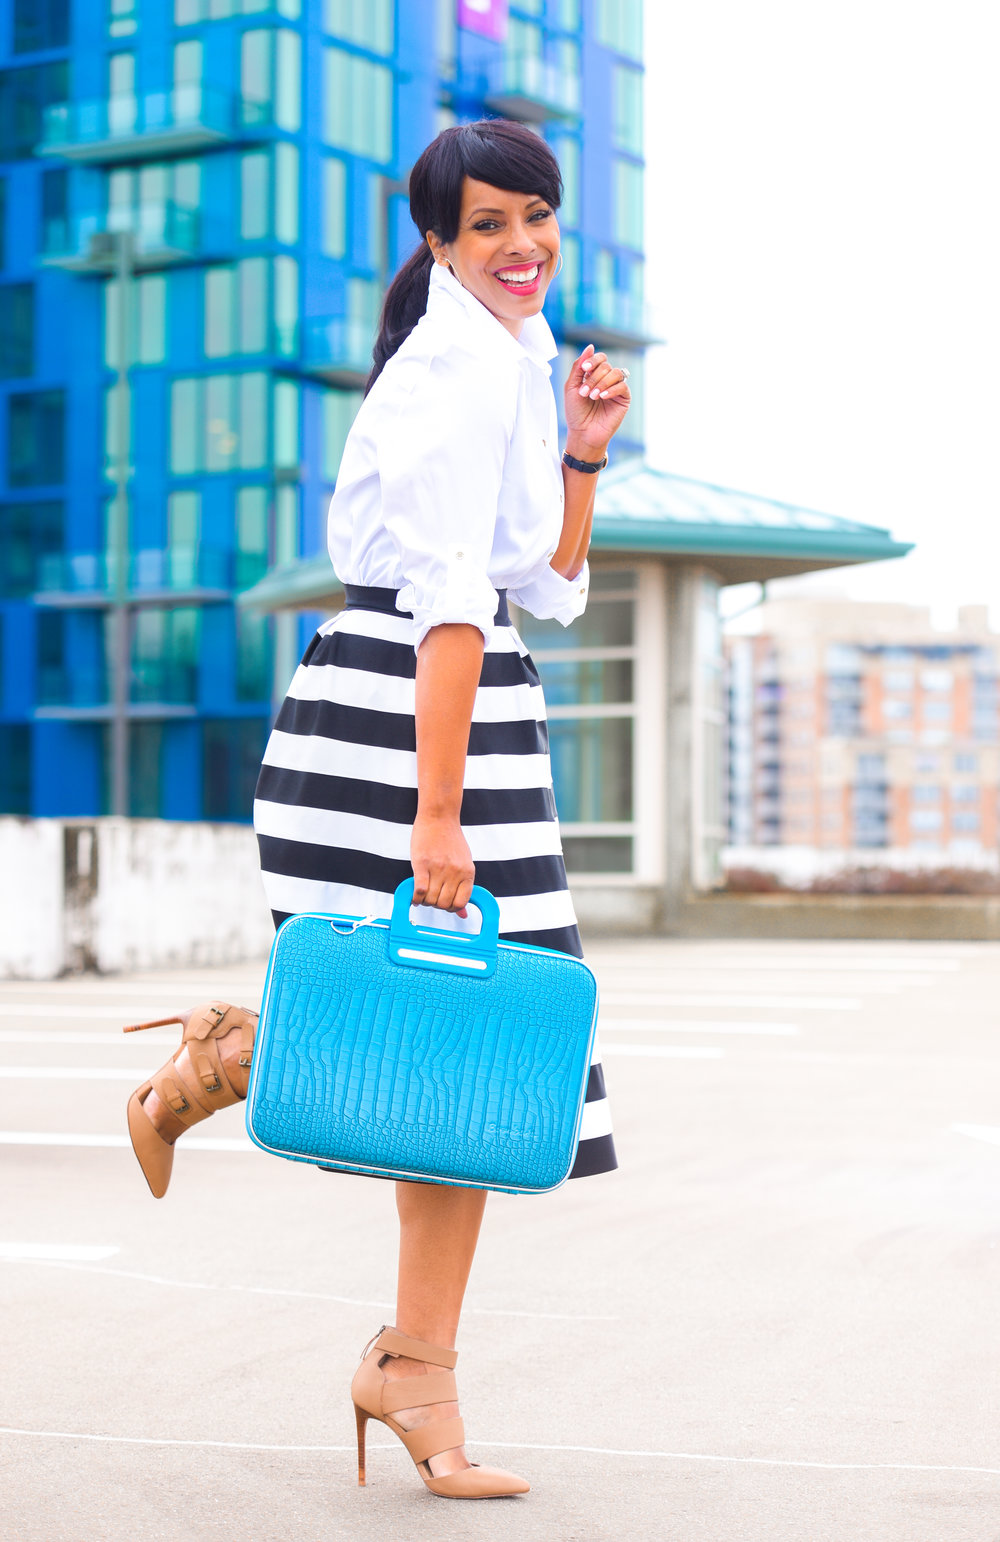 Raquel's seen in collaboration with bombata bags